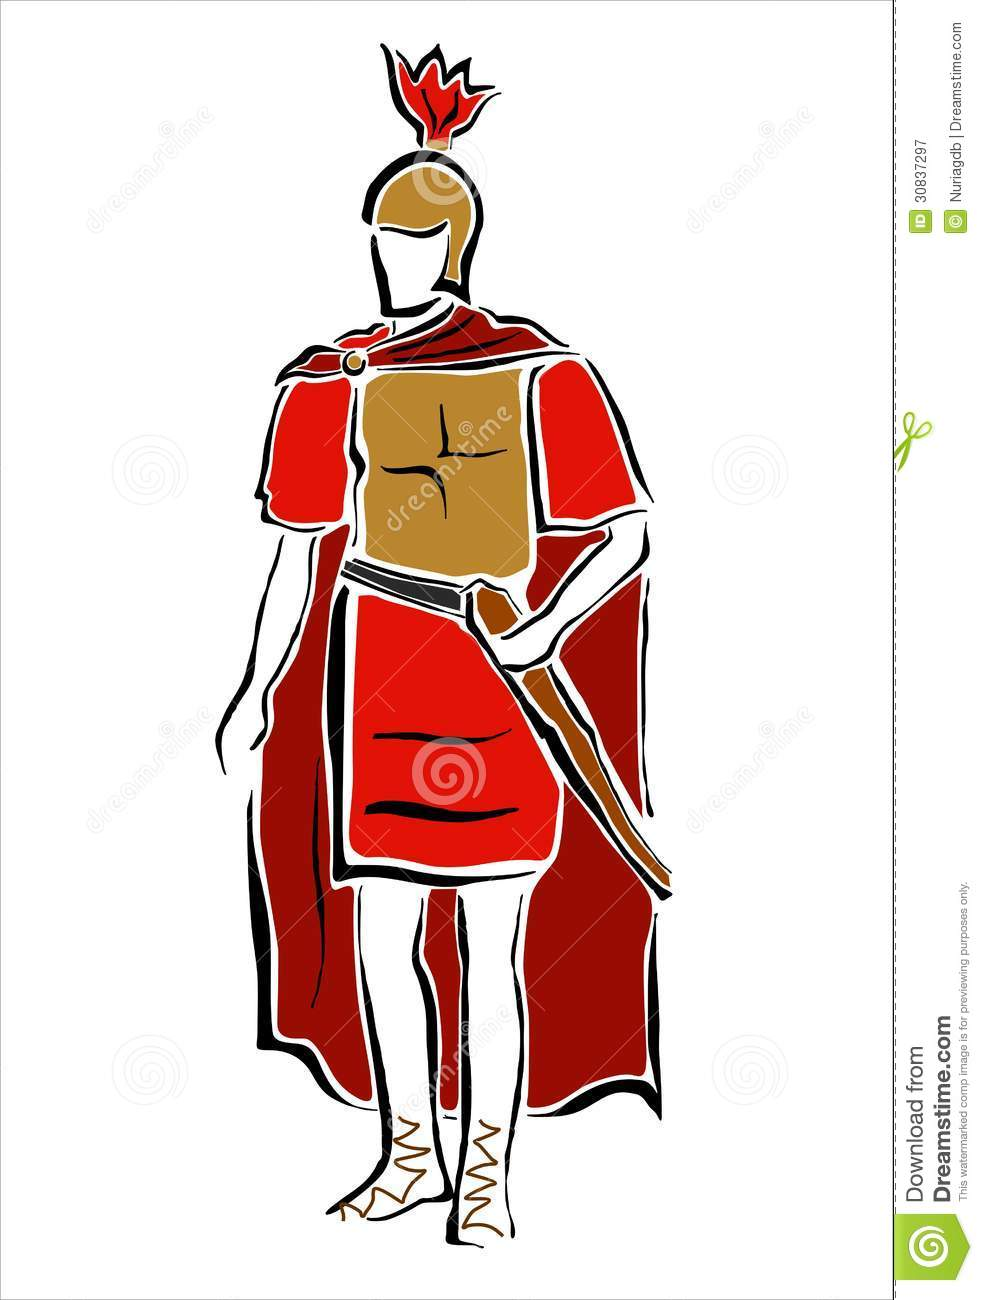 roman soldier diagram msd 6200 wiring royalty free stock photography - image: 30837297